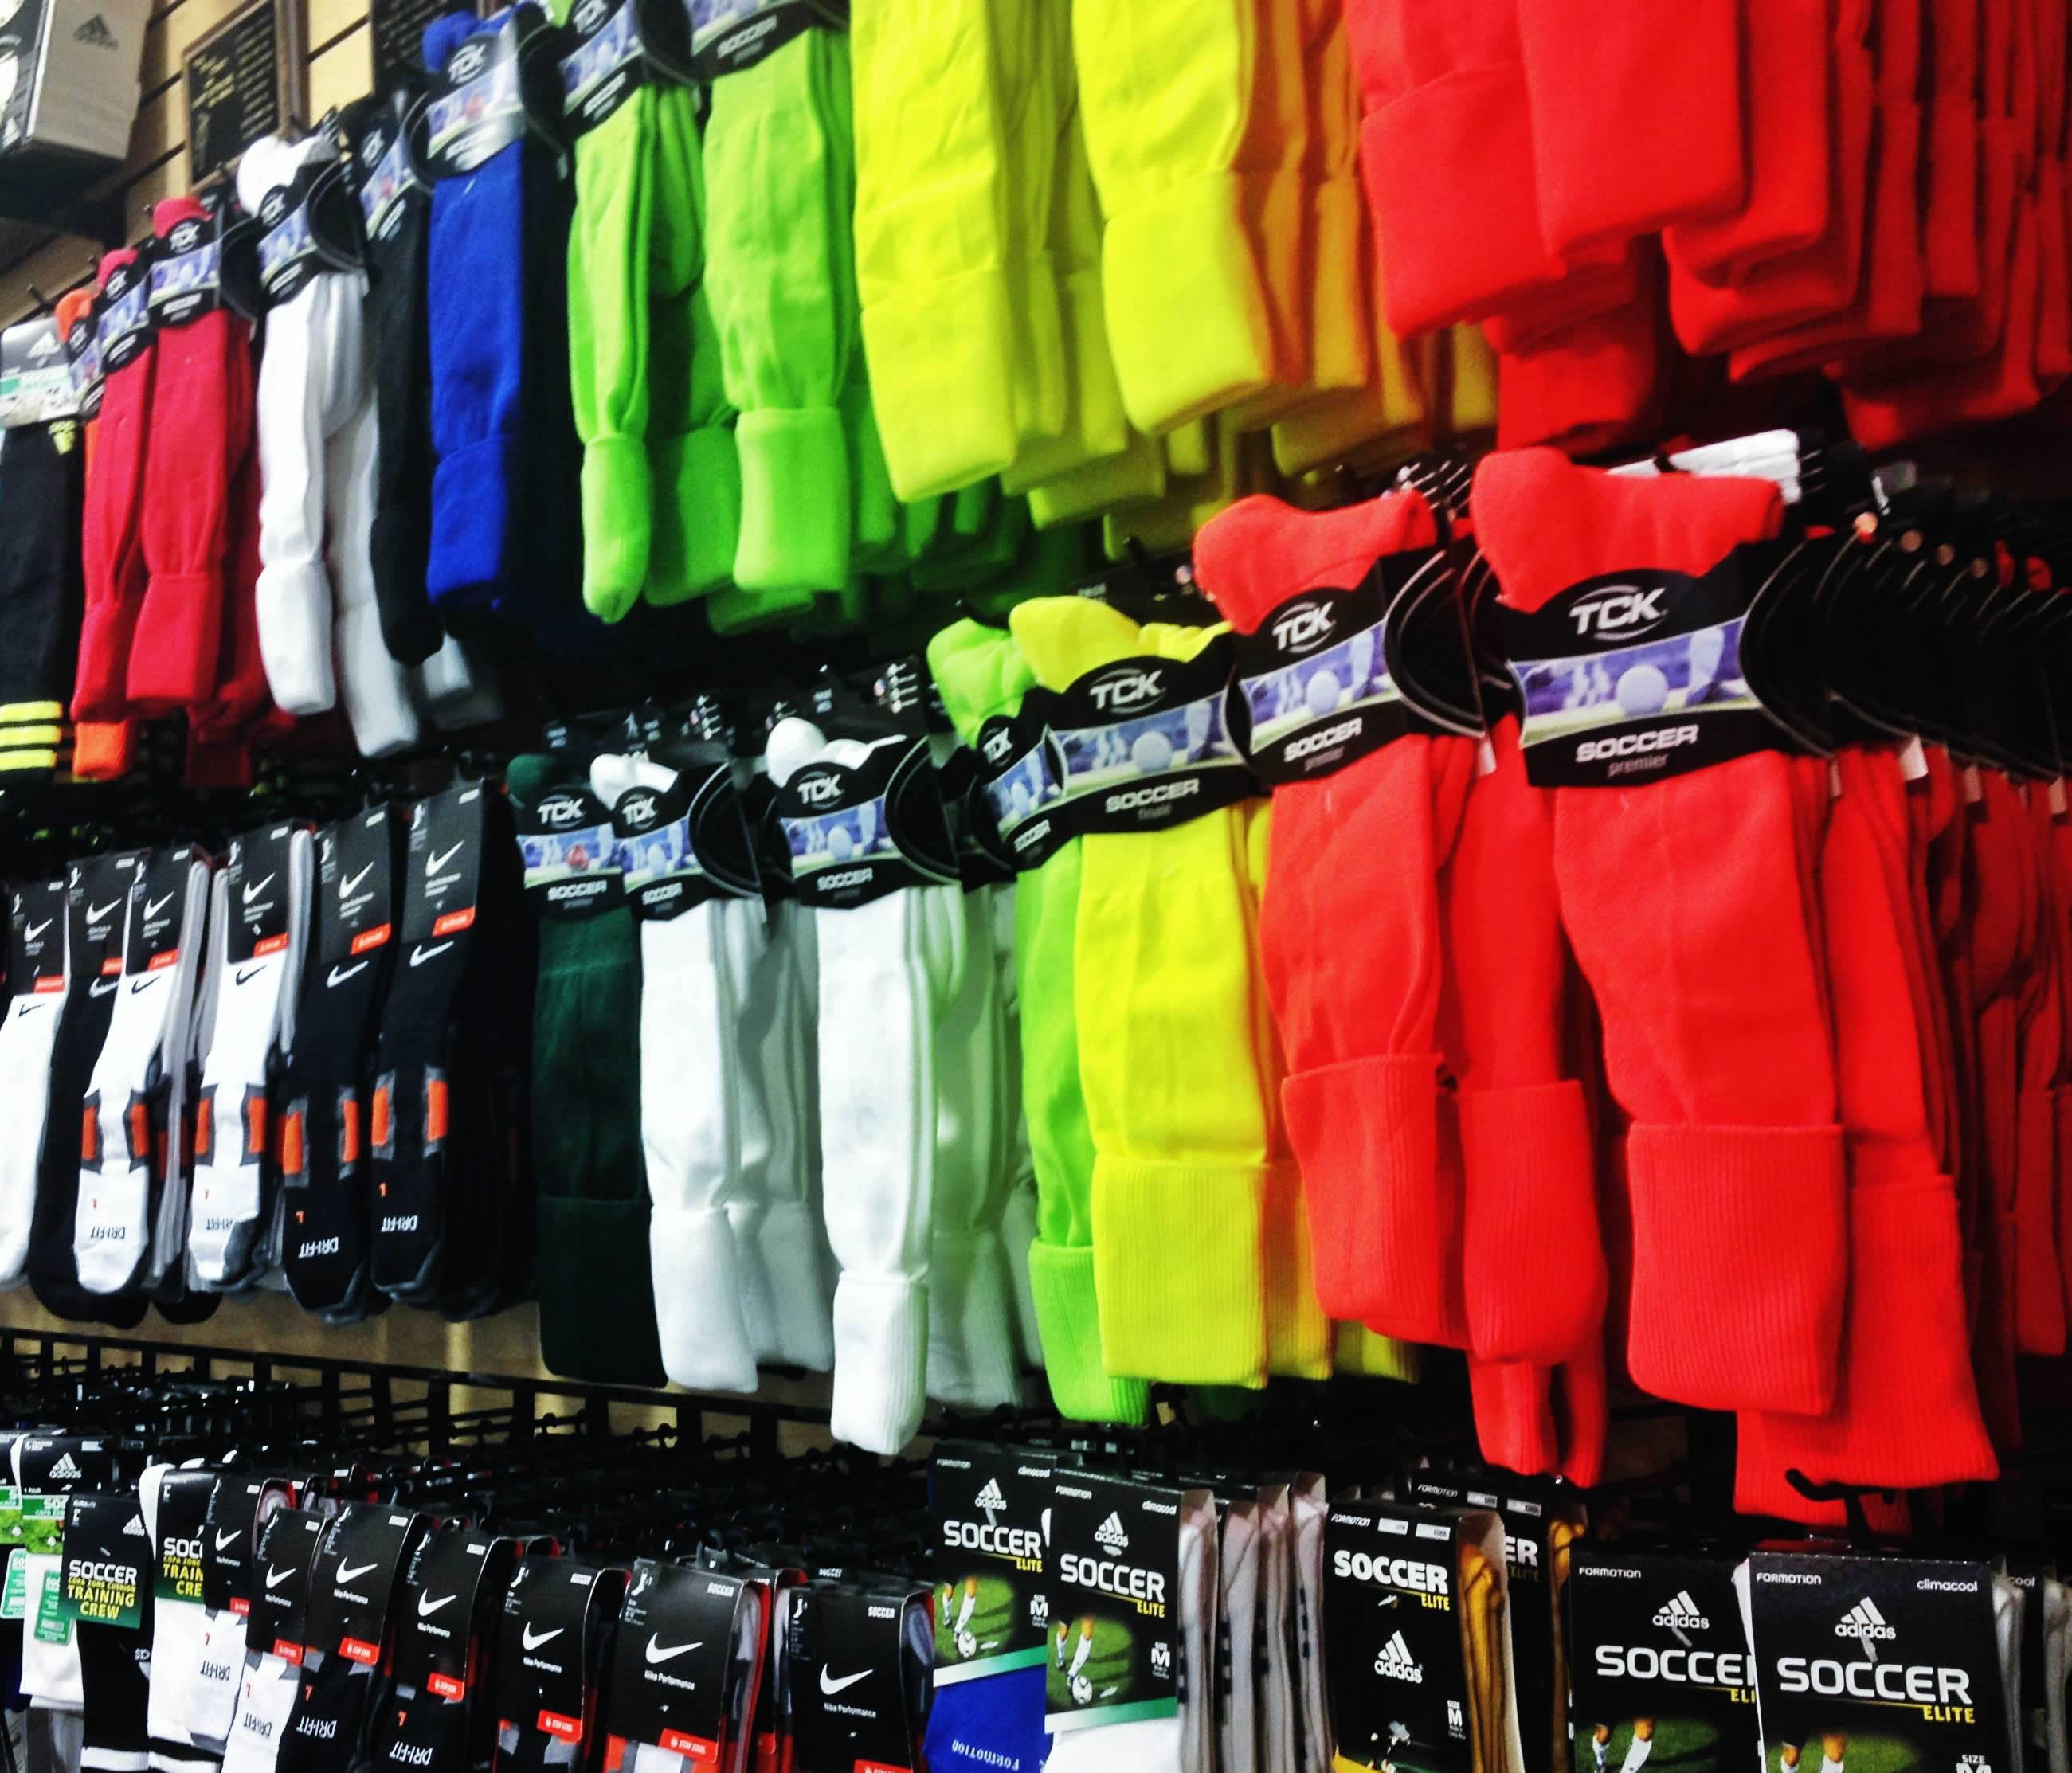 new style 1a91e 6eeb3 Soccer Socks Sizing Guide - AuthenticSoccer.com